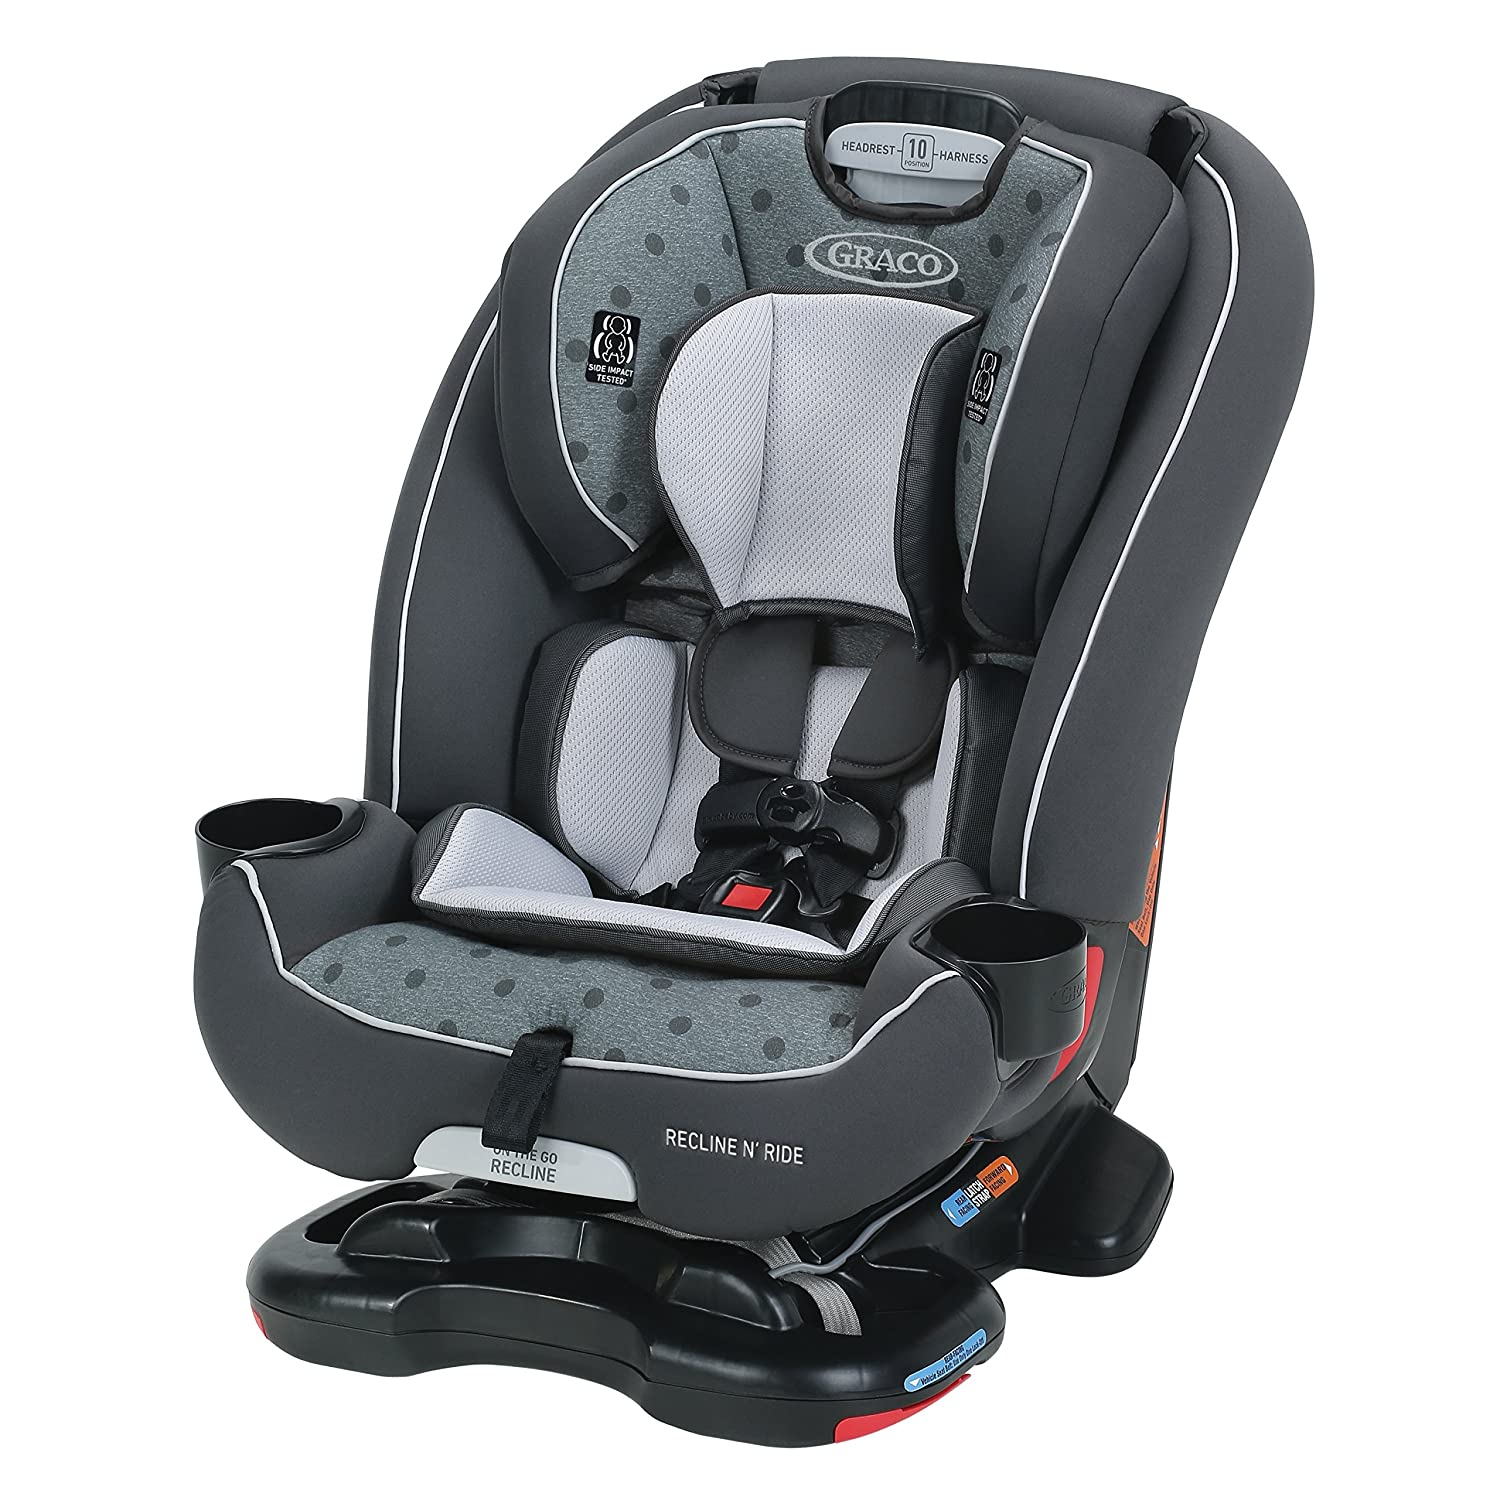 Graco Recline N' Ride 3-in-1 Car Seat Featuring On The Go Recline, Murphy Graco Baby 2048730